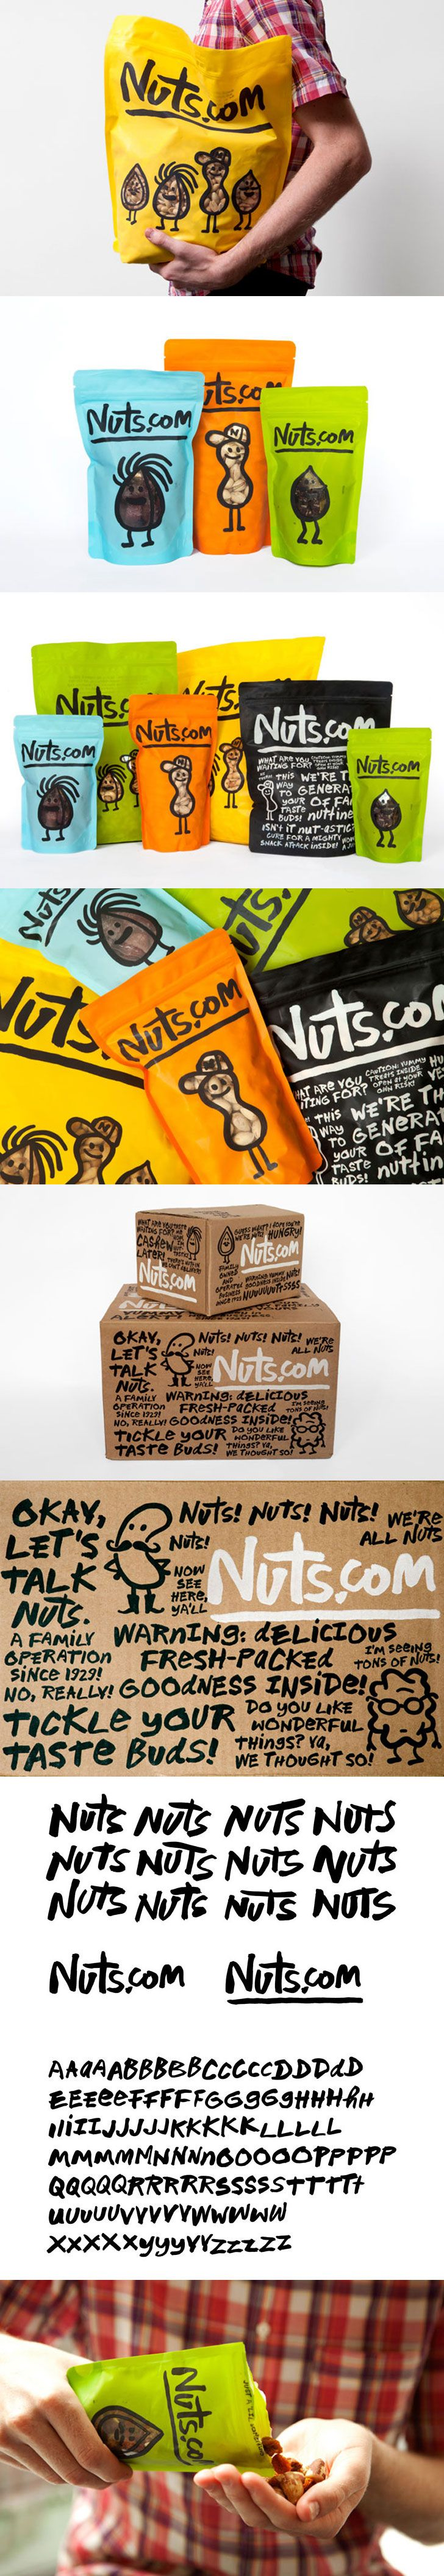 Expanded Nuts.com packaging by Pentagram. Michael Bierut, partner-in-charge and designer; Katie Barcelona and Aron Fay, designers. Illustrations by Christoph Niemann. Font design by Jeremy Mickel based on a hand-drawn alphabet by Michael Bierut. PD